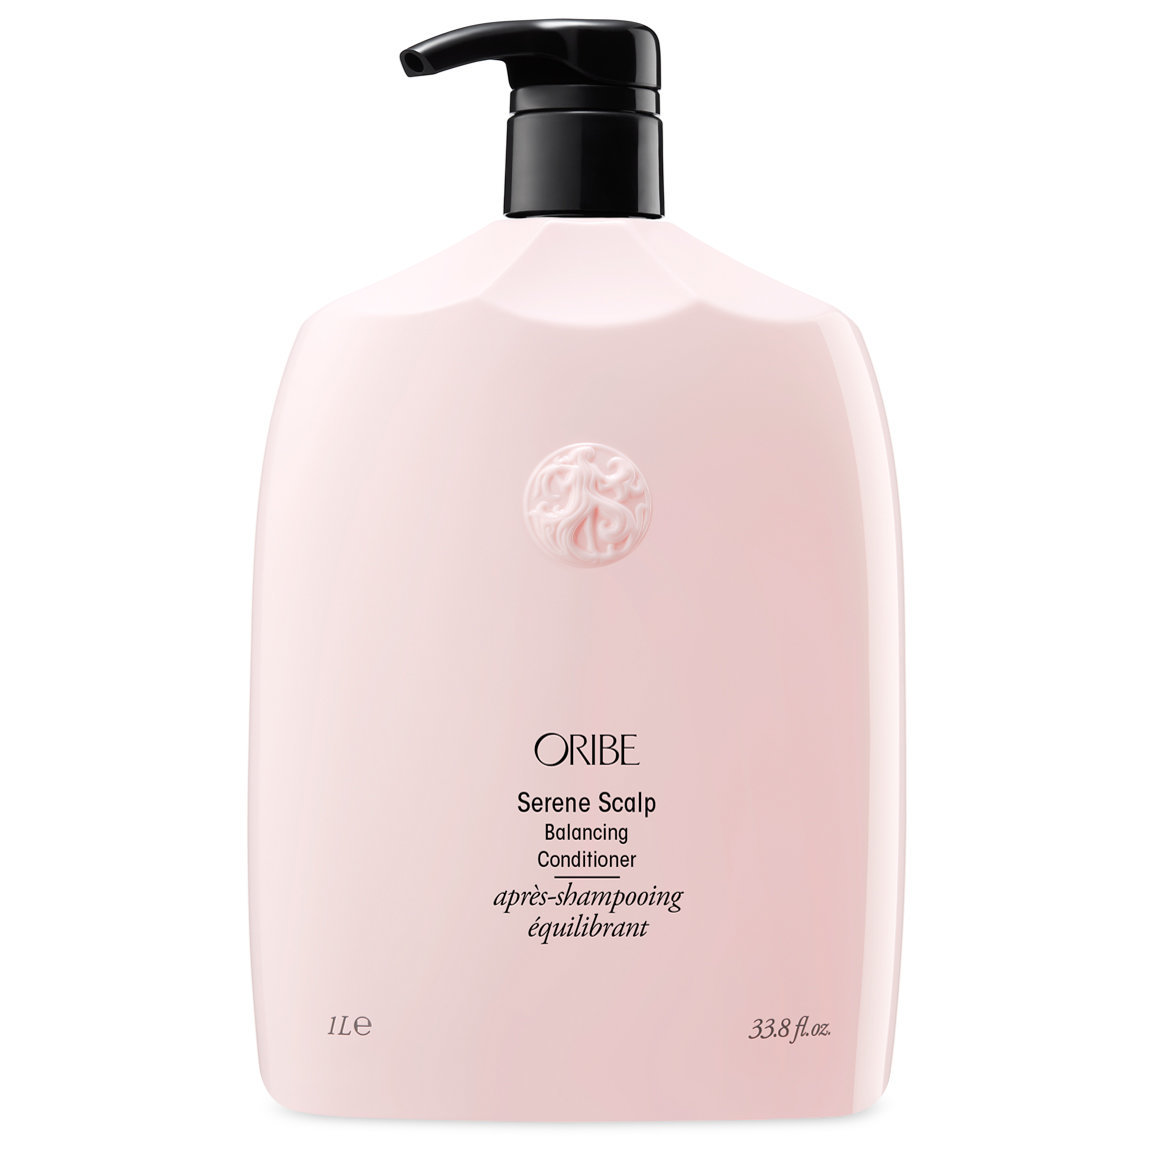 Oribe Serene Scalp Balancing Conditioner 1 L product swatch.